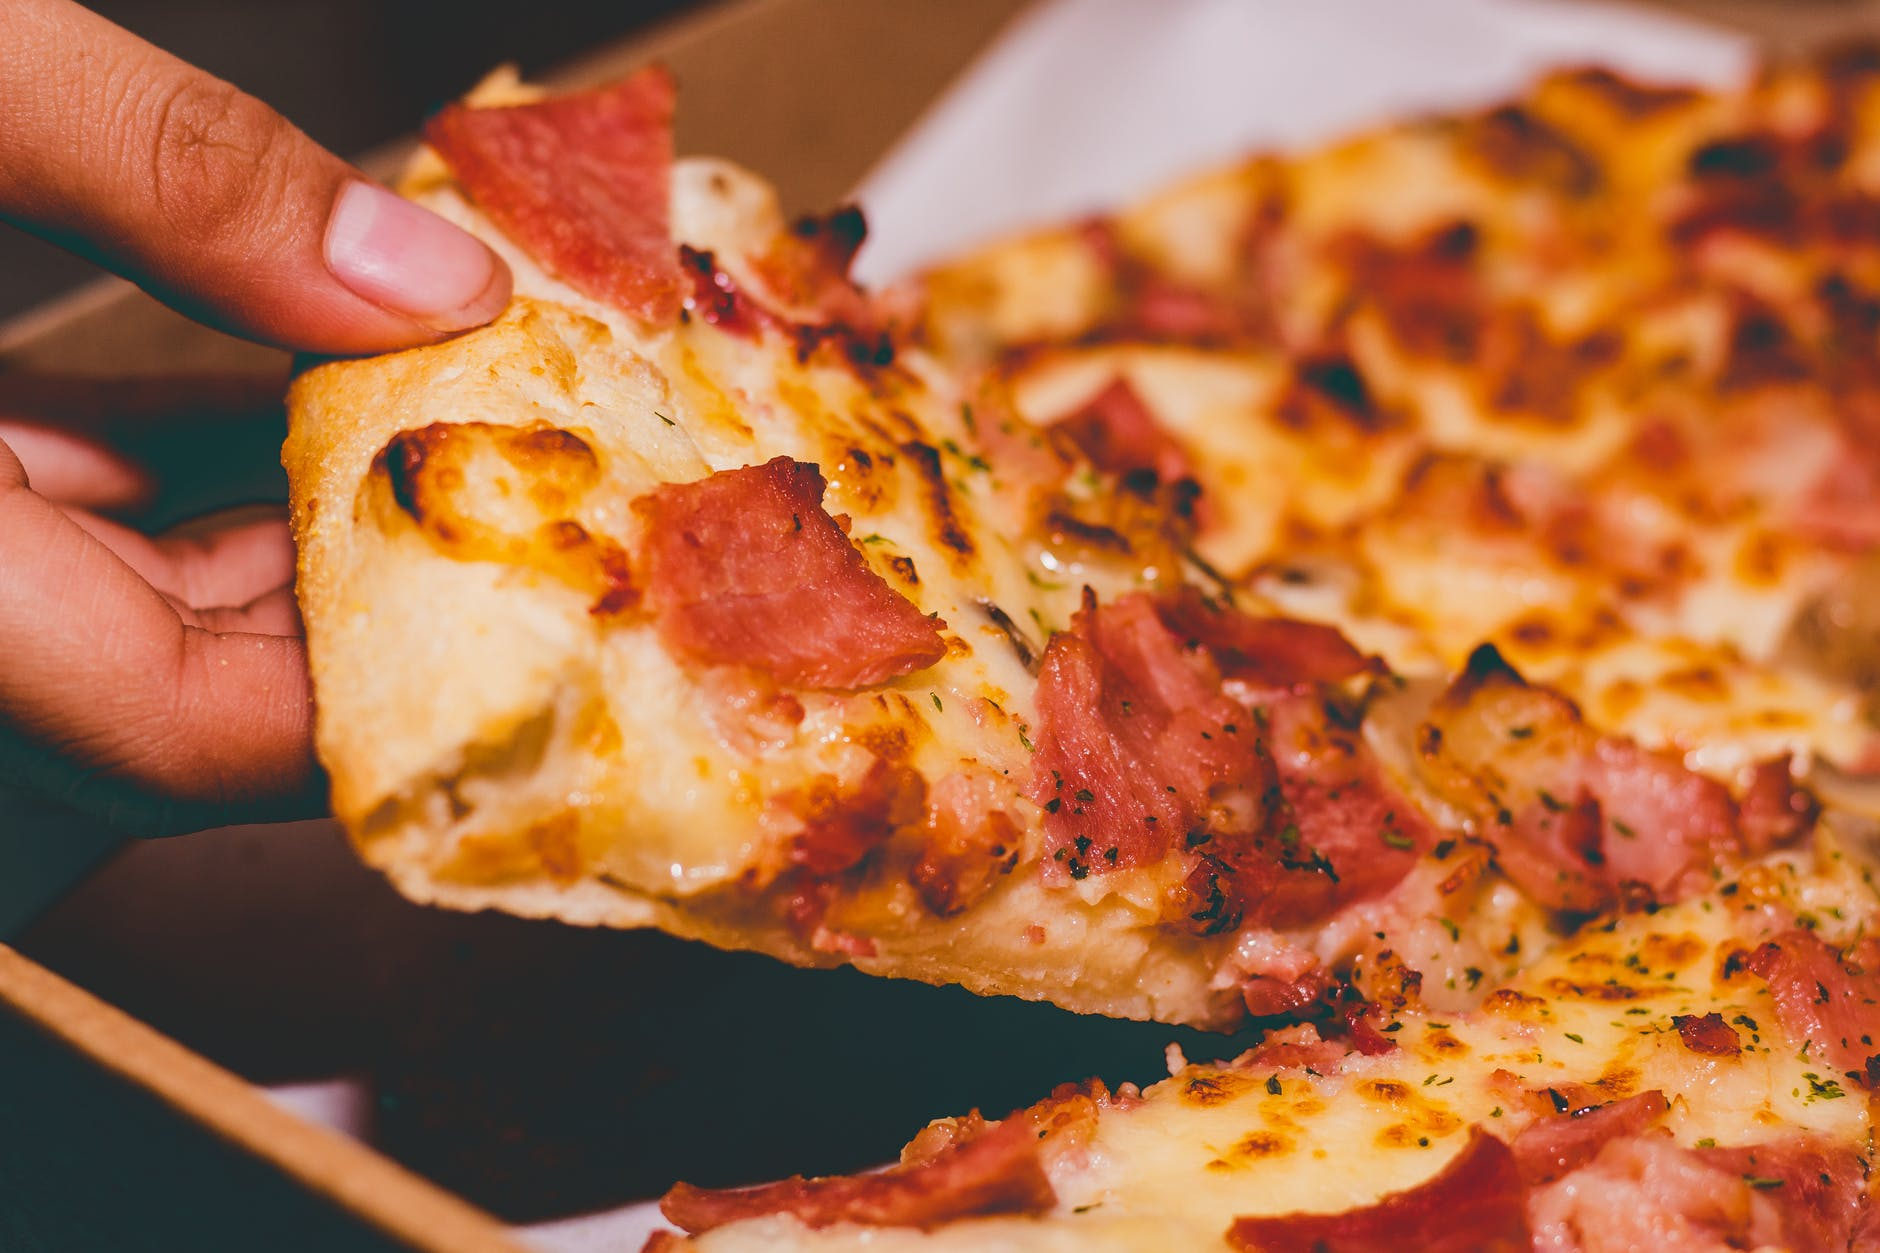 Americans on the average eat 18 acres of pizza every day.